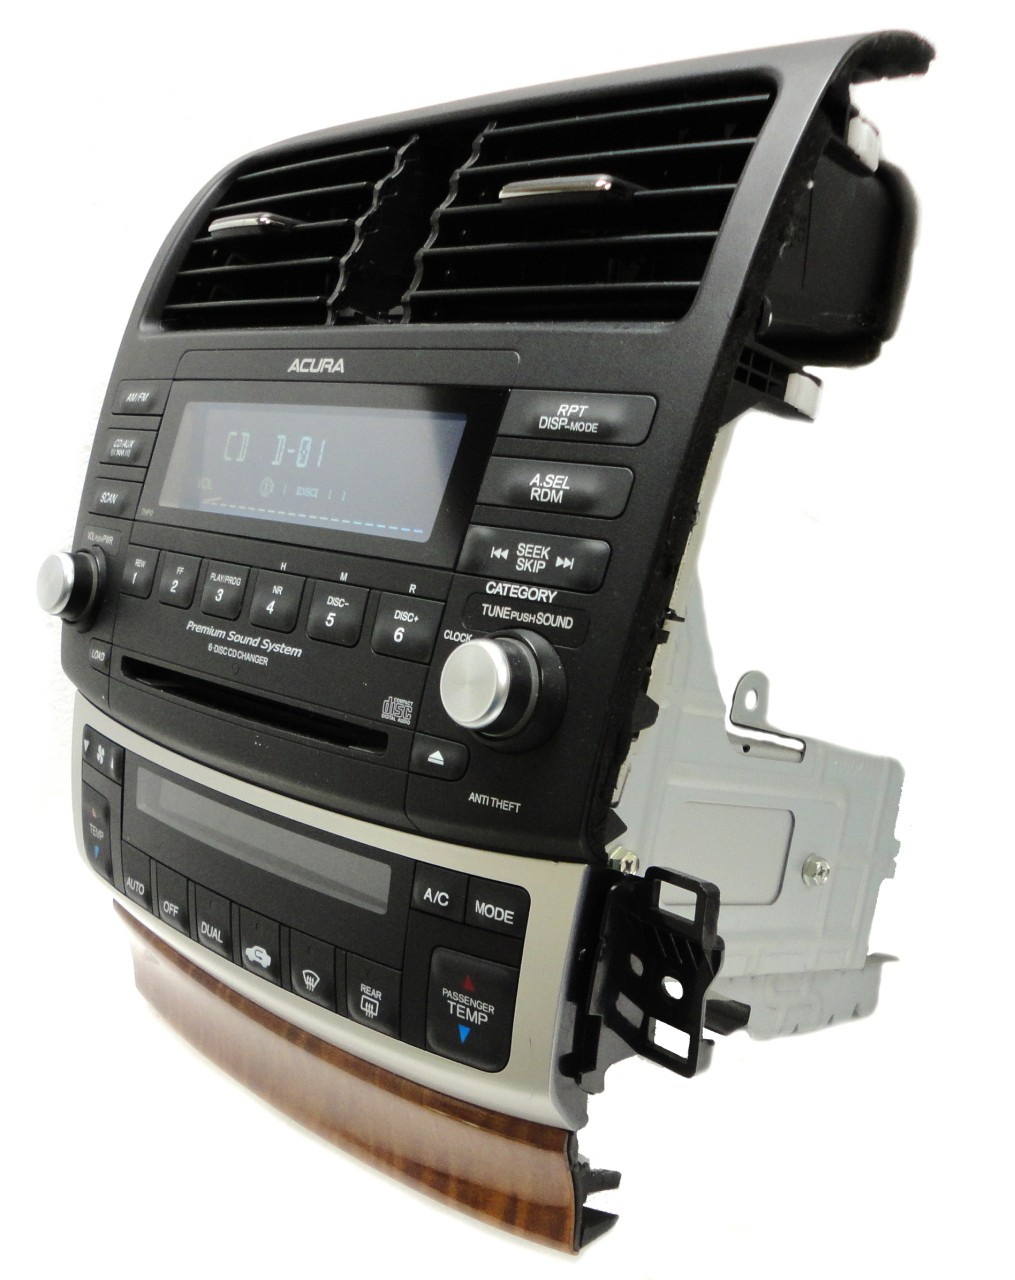 05 06 07 08 ACURA TSX Radio Stereo 6 Disc Changer CD